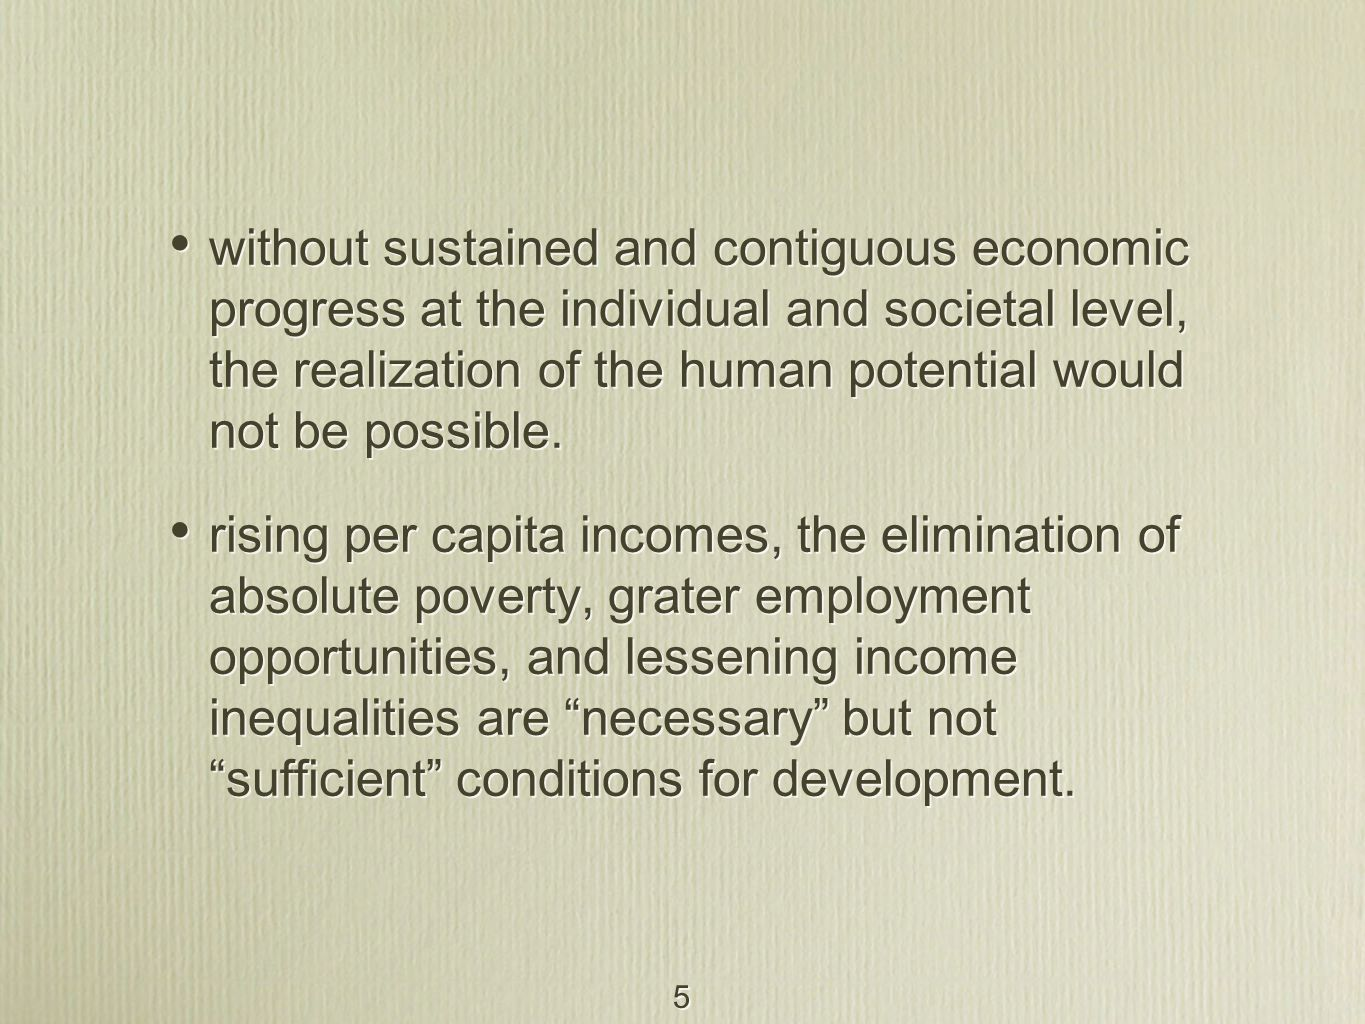 without sustained and contiguous economic progress at the individual and societal level, the realization of the human potential would not be possible.